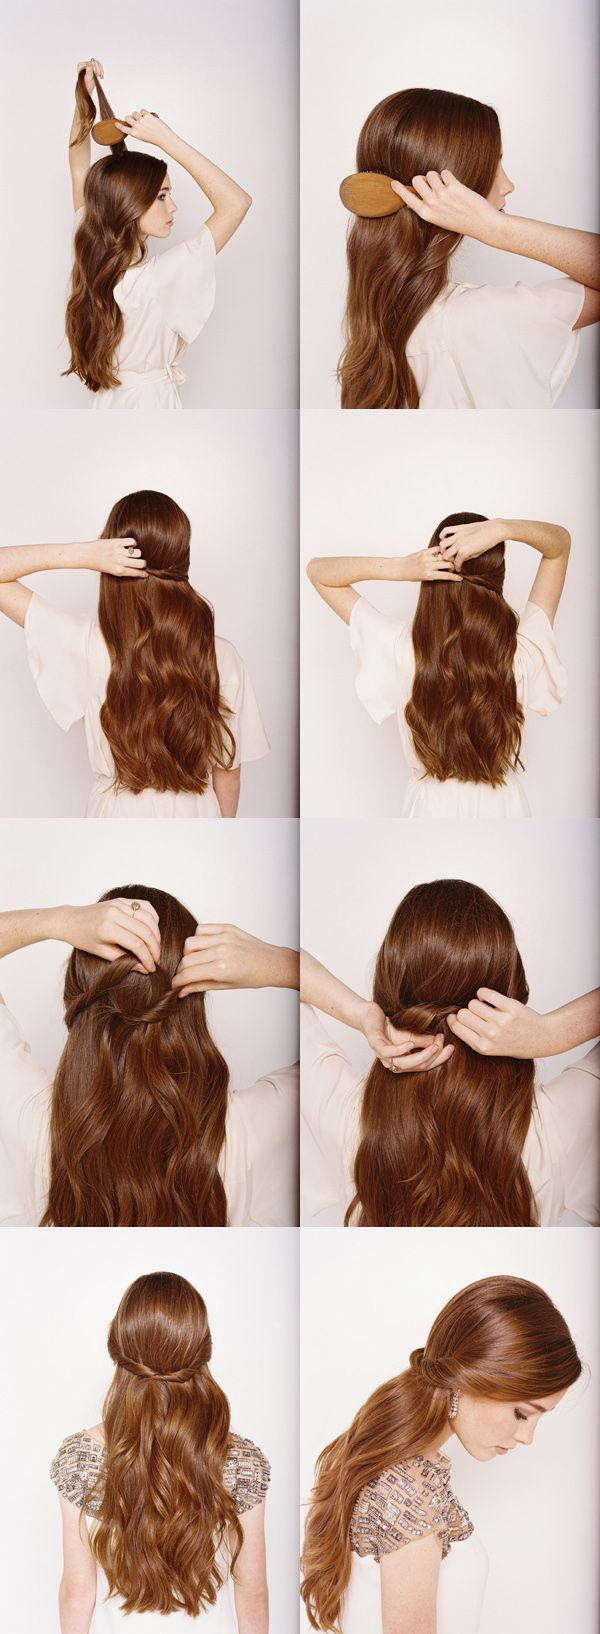 Half Up Half Down Hair Style, i like the hair color.